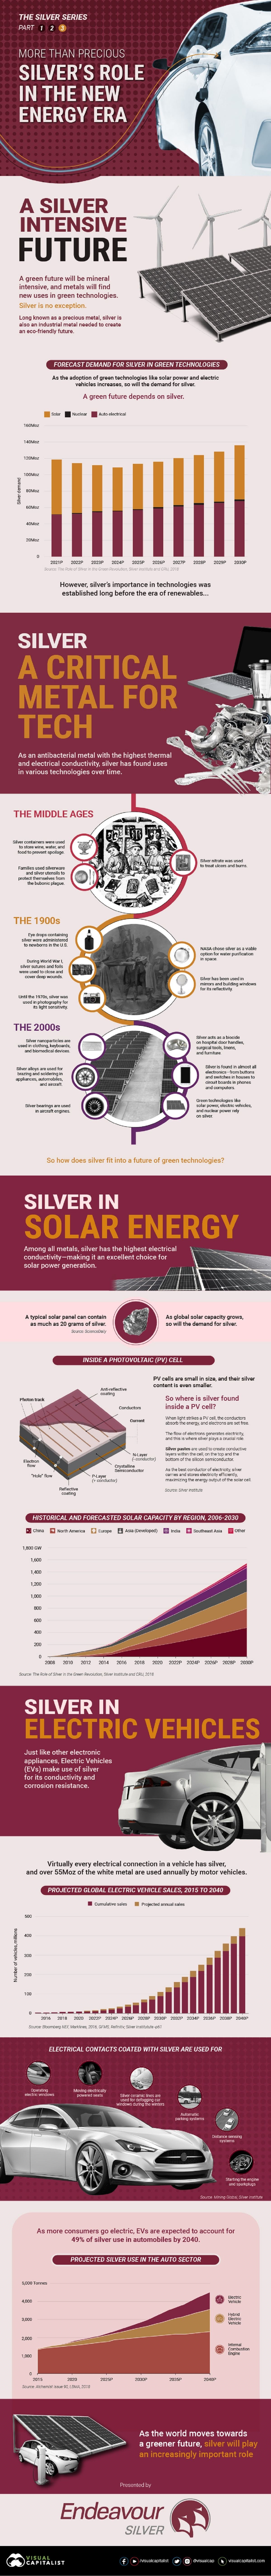 more-than-precious-silvers-role-in-the-new-energy-era-part-3-of-3-infographic